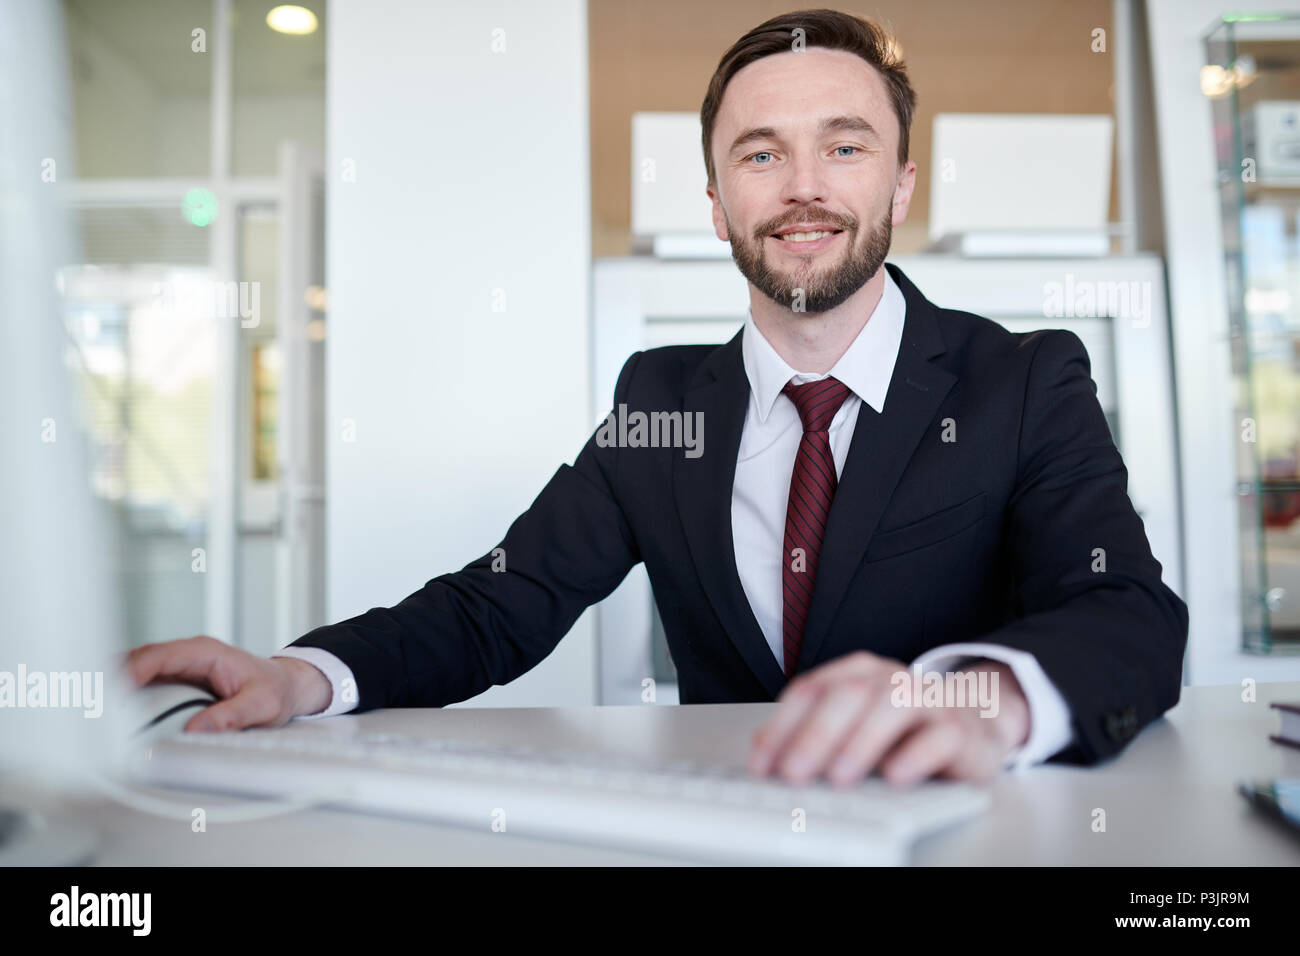 Handsome Business Manager At Desk Stock Photo Alamy